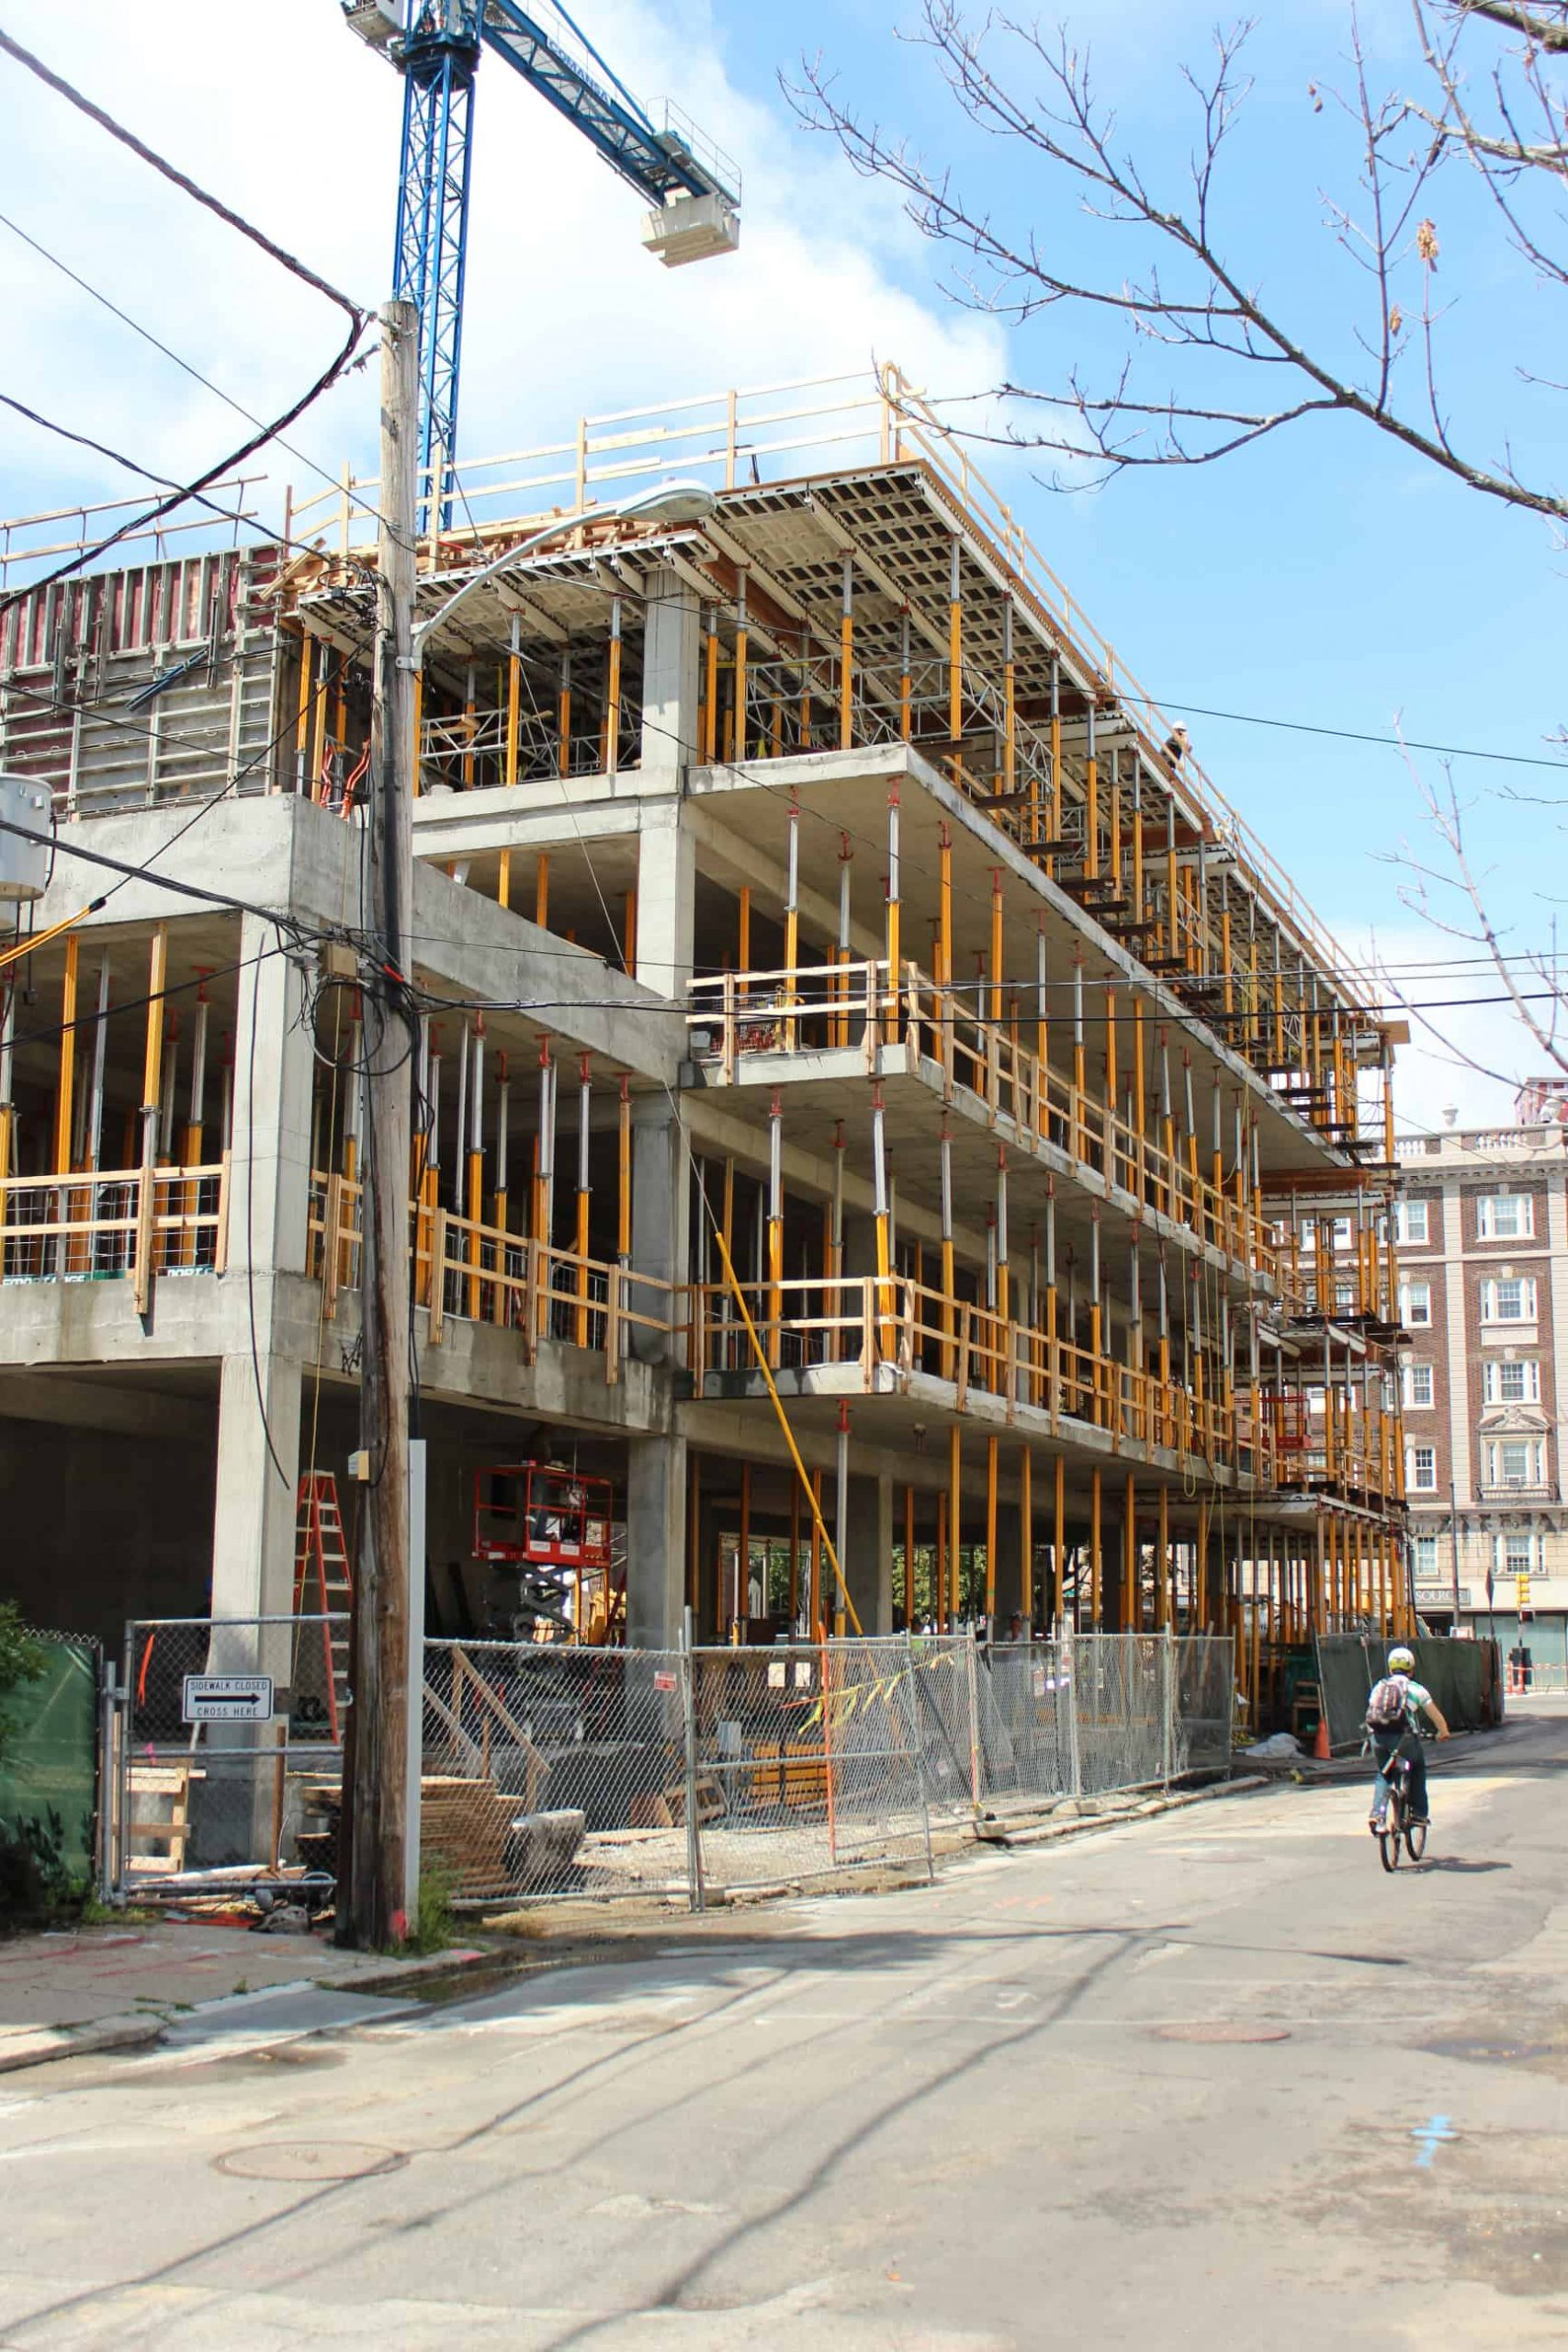 Construction well underway at Lesley University's Lunder Arts Center